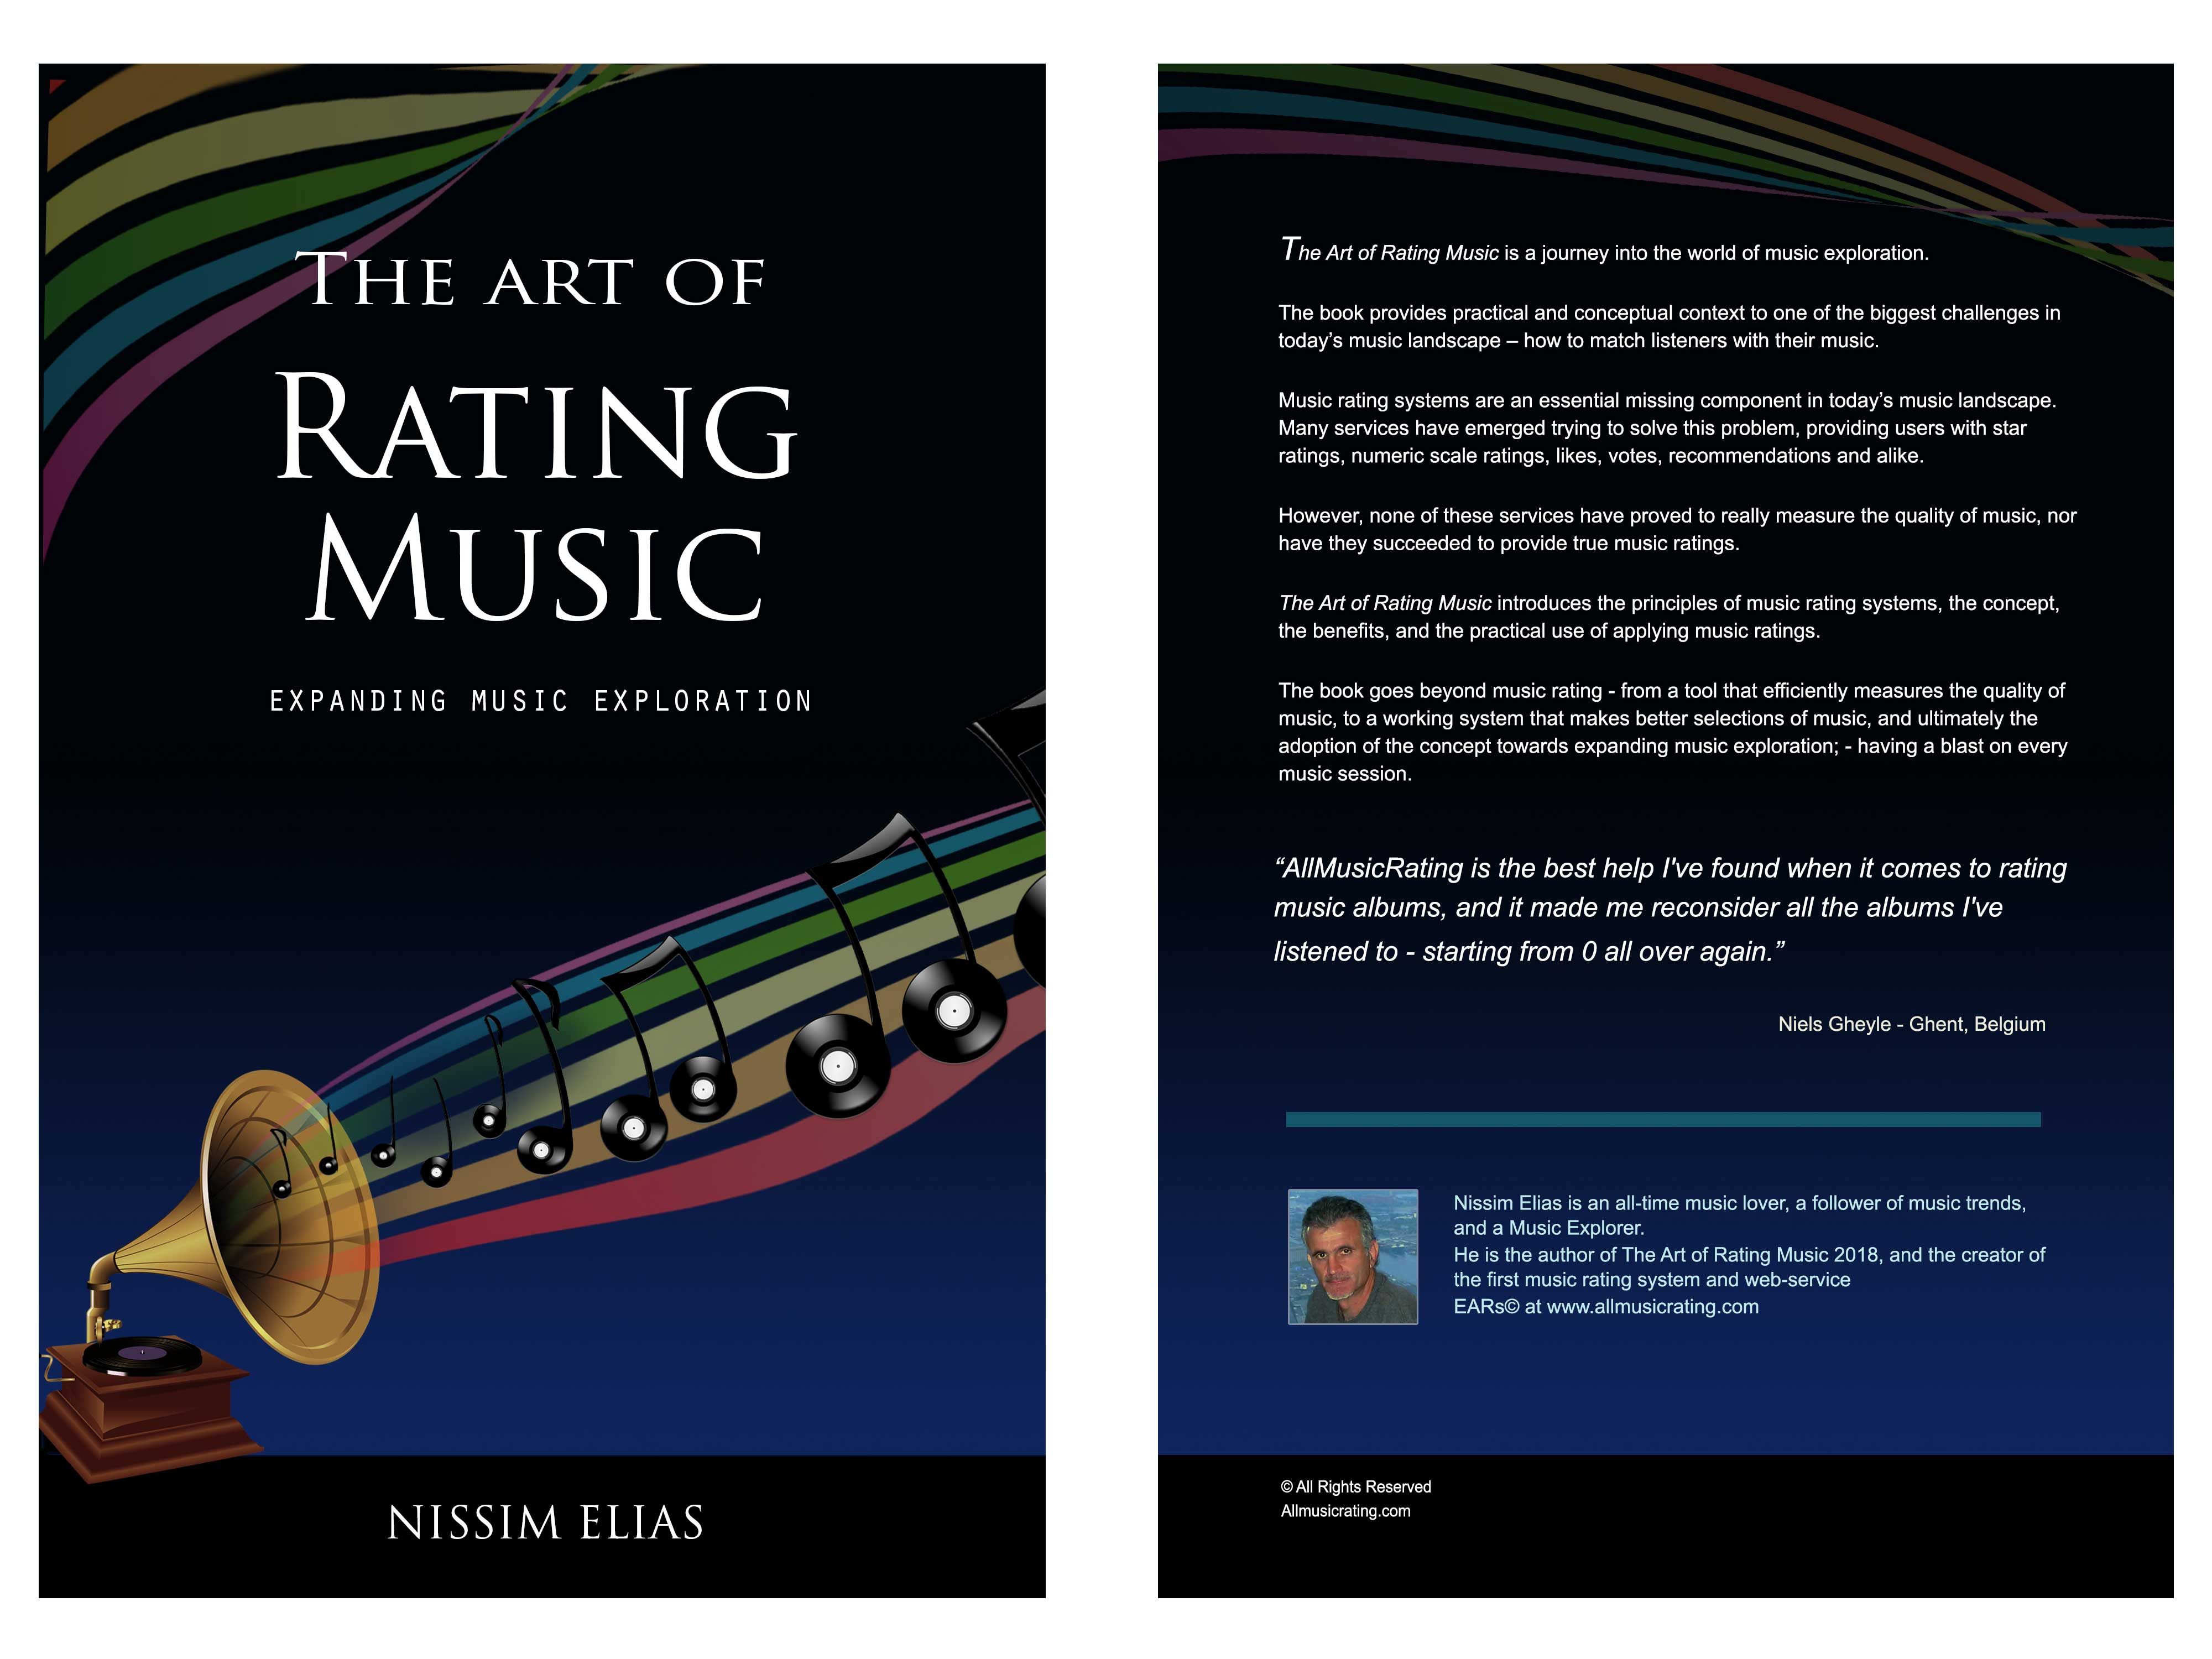 Front and back covers of The Art of Rating Music